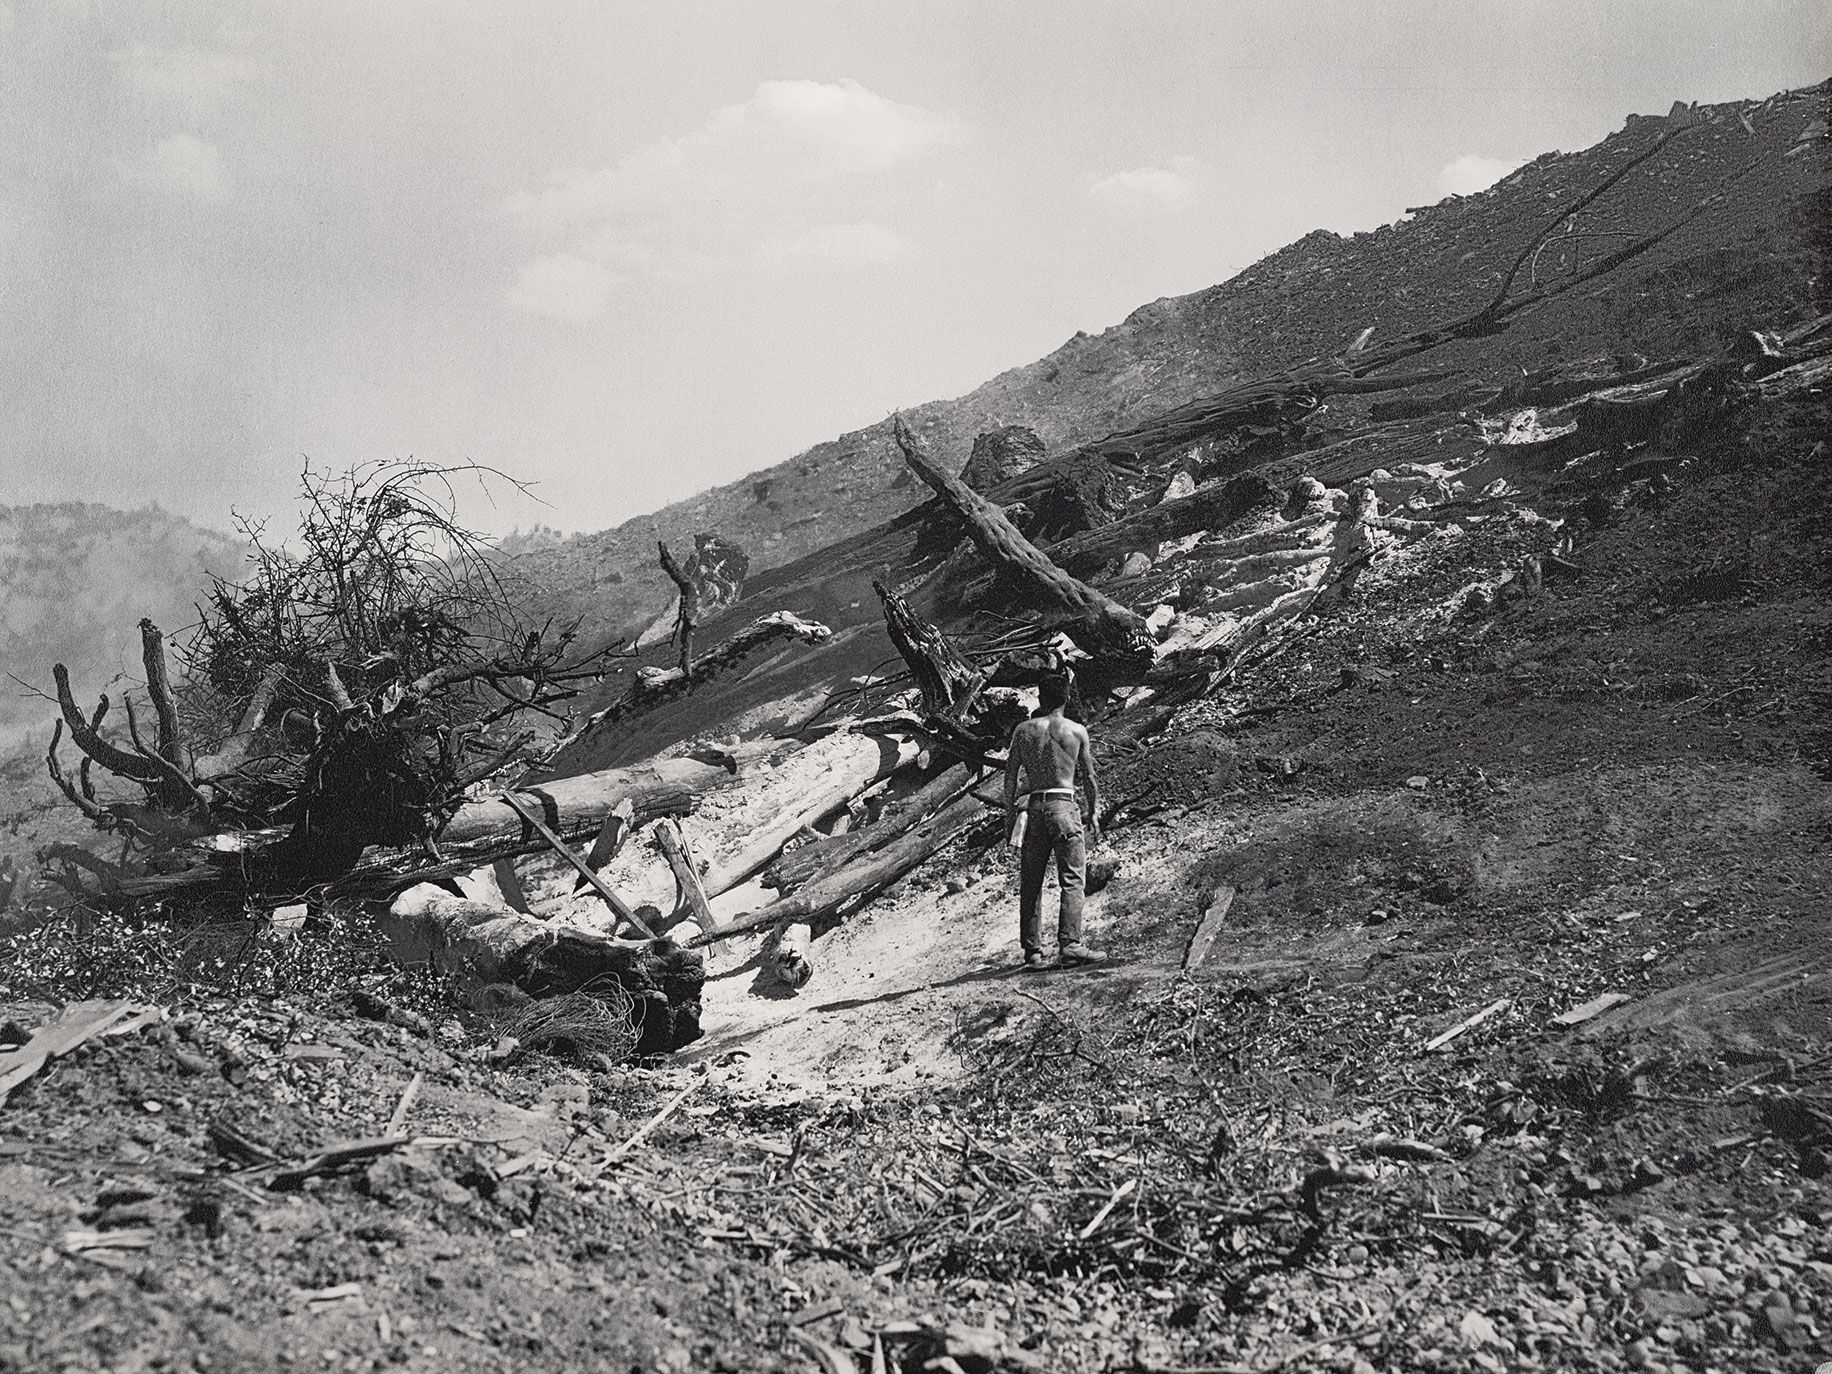 Burning Pile of Trees and Barren Hill by Dorothea Lange captures the demolition of Berryessa Valley, 1956.